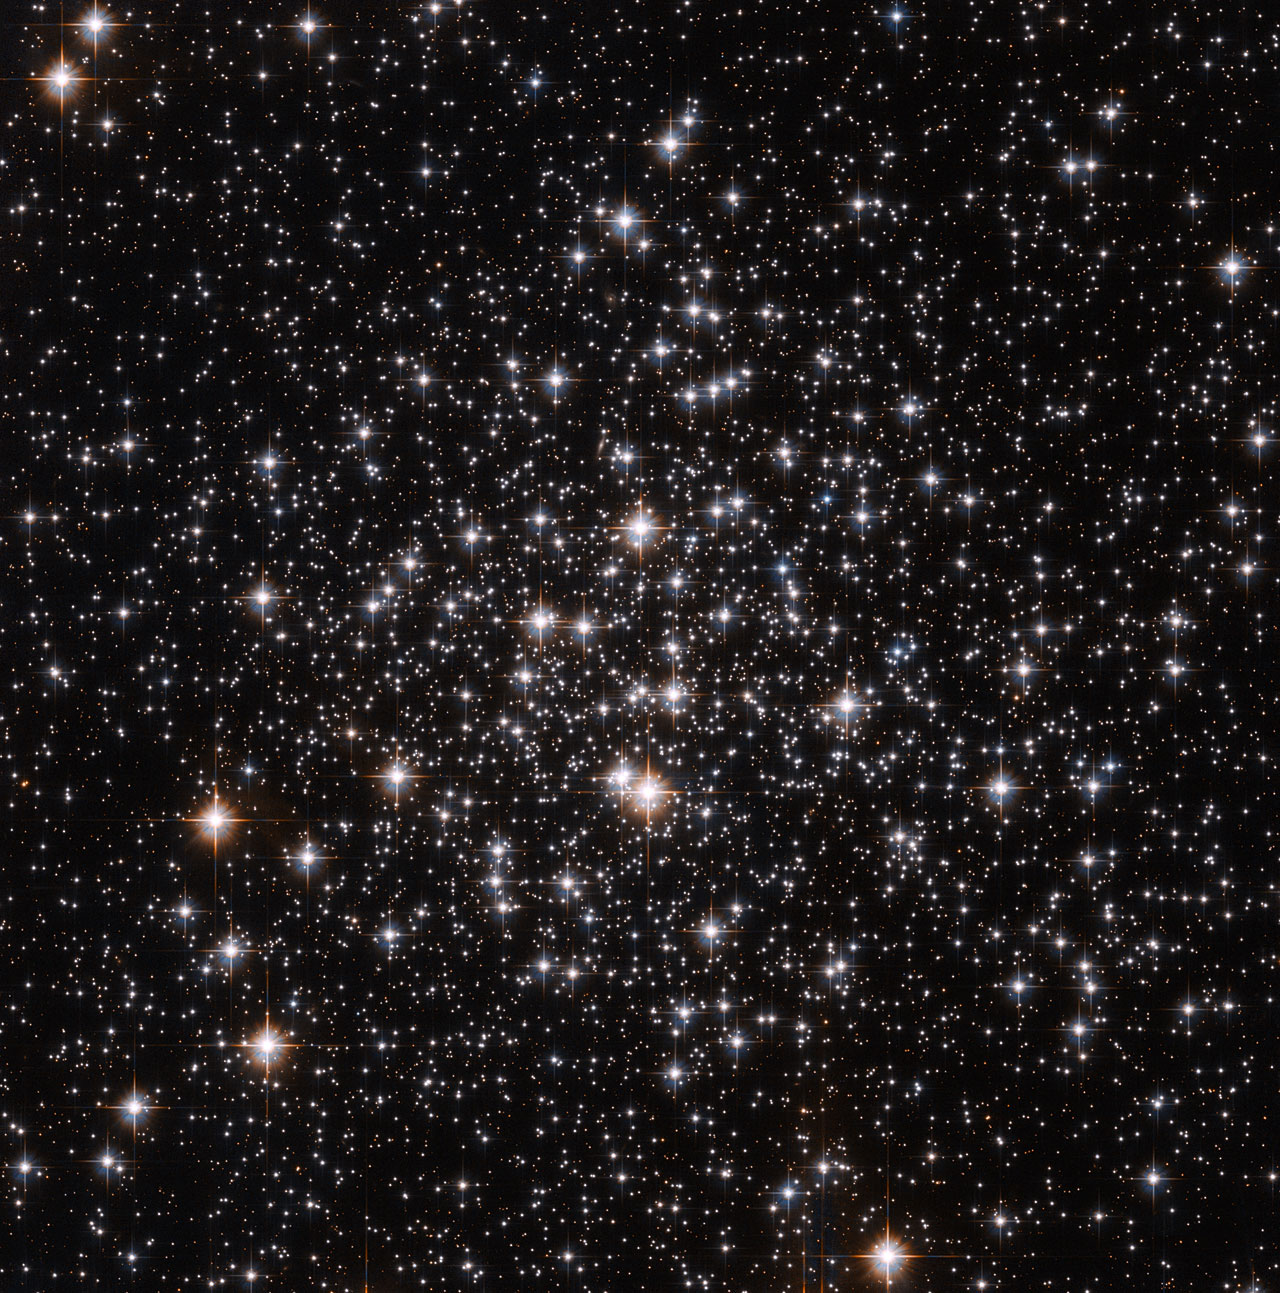 Messier 71: an unusual globular cluster